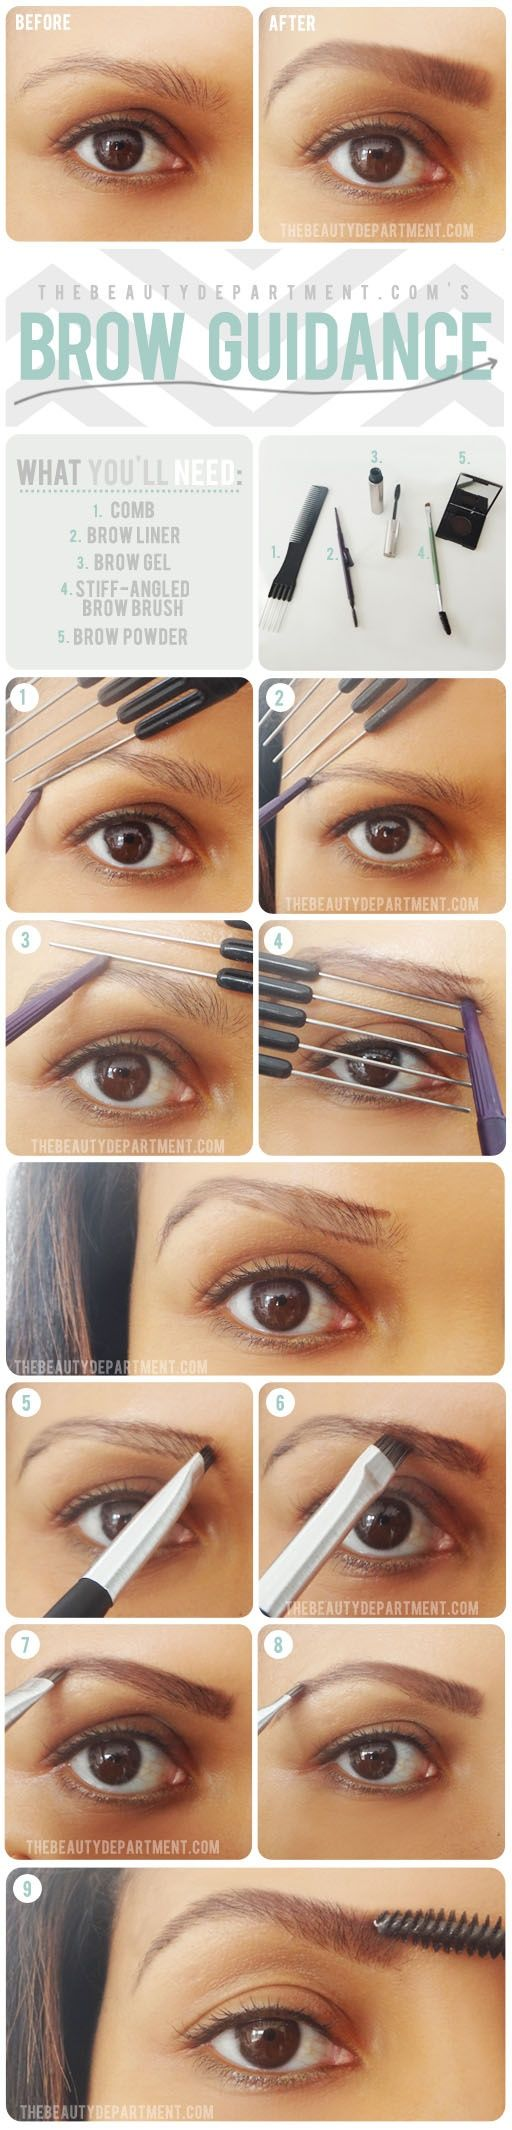 Eye Brow Guidance: